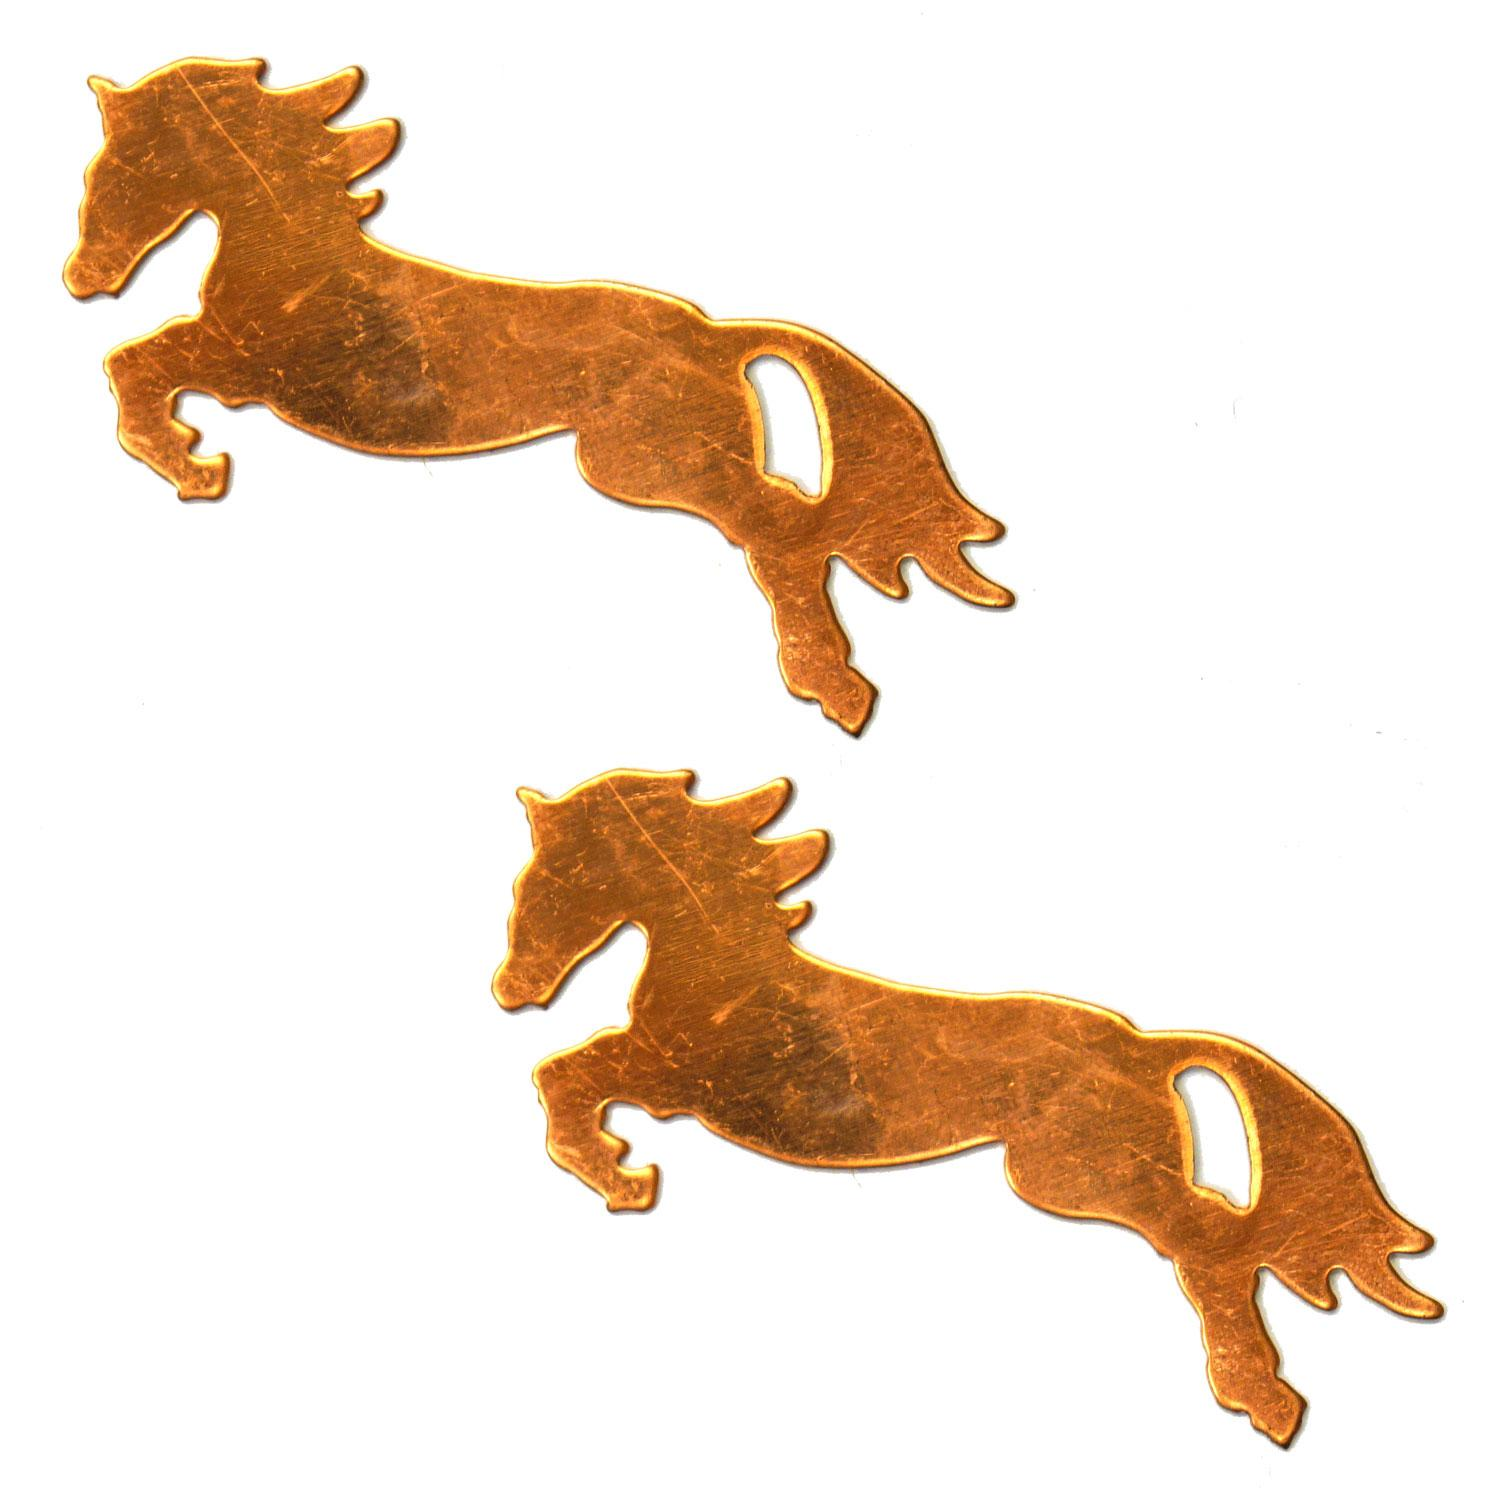 Jumping Horse Copper Shape - 2 Pack